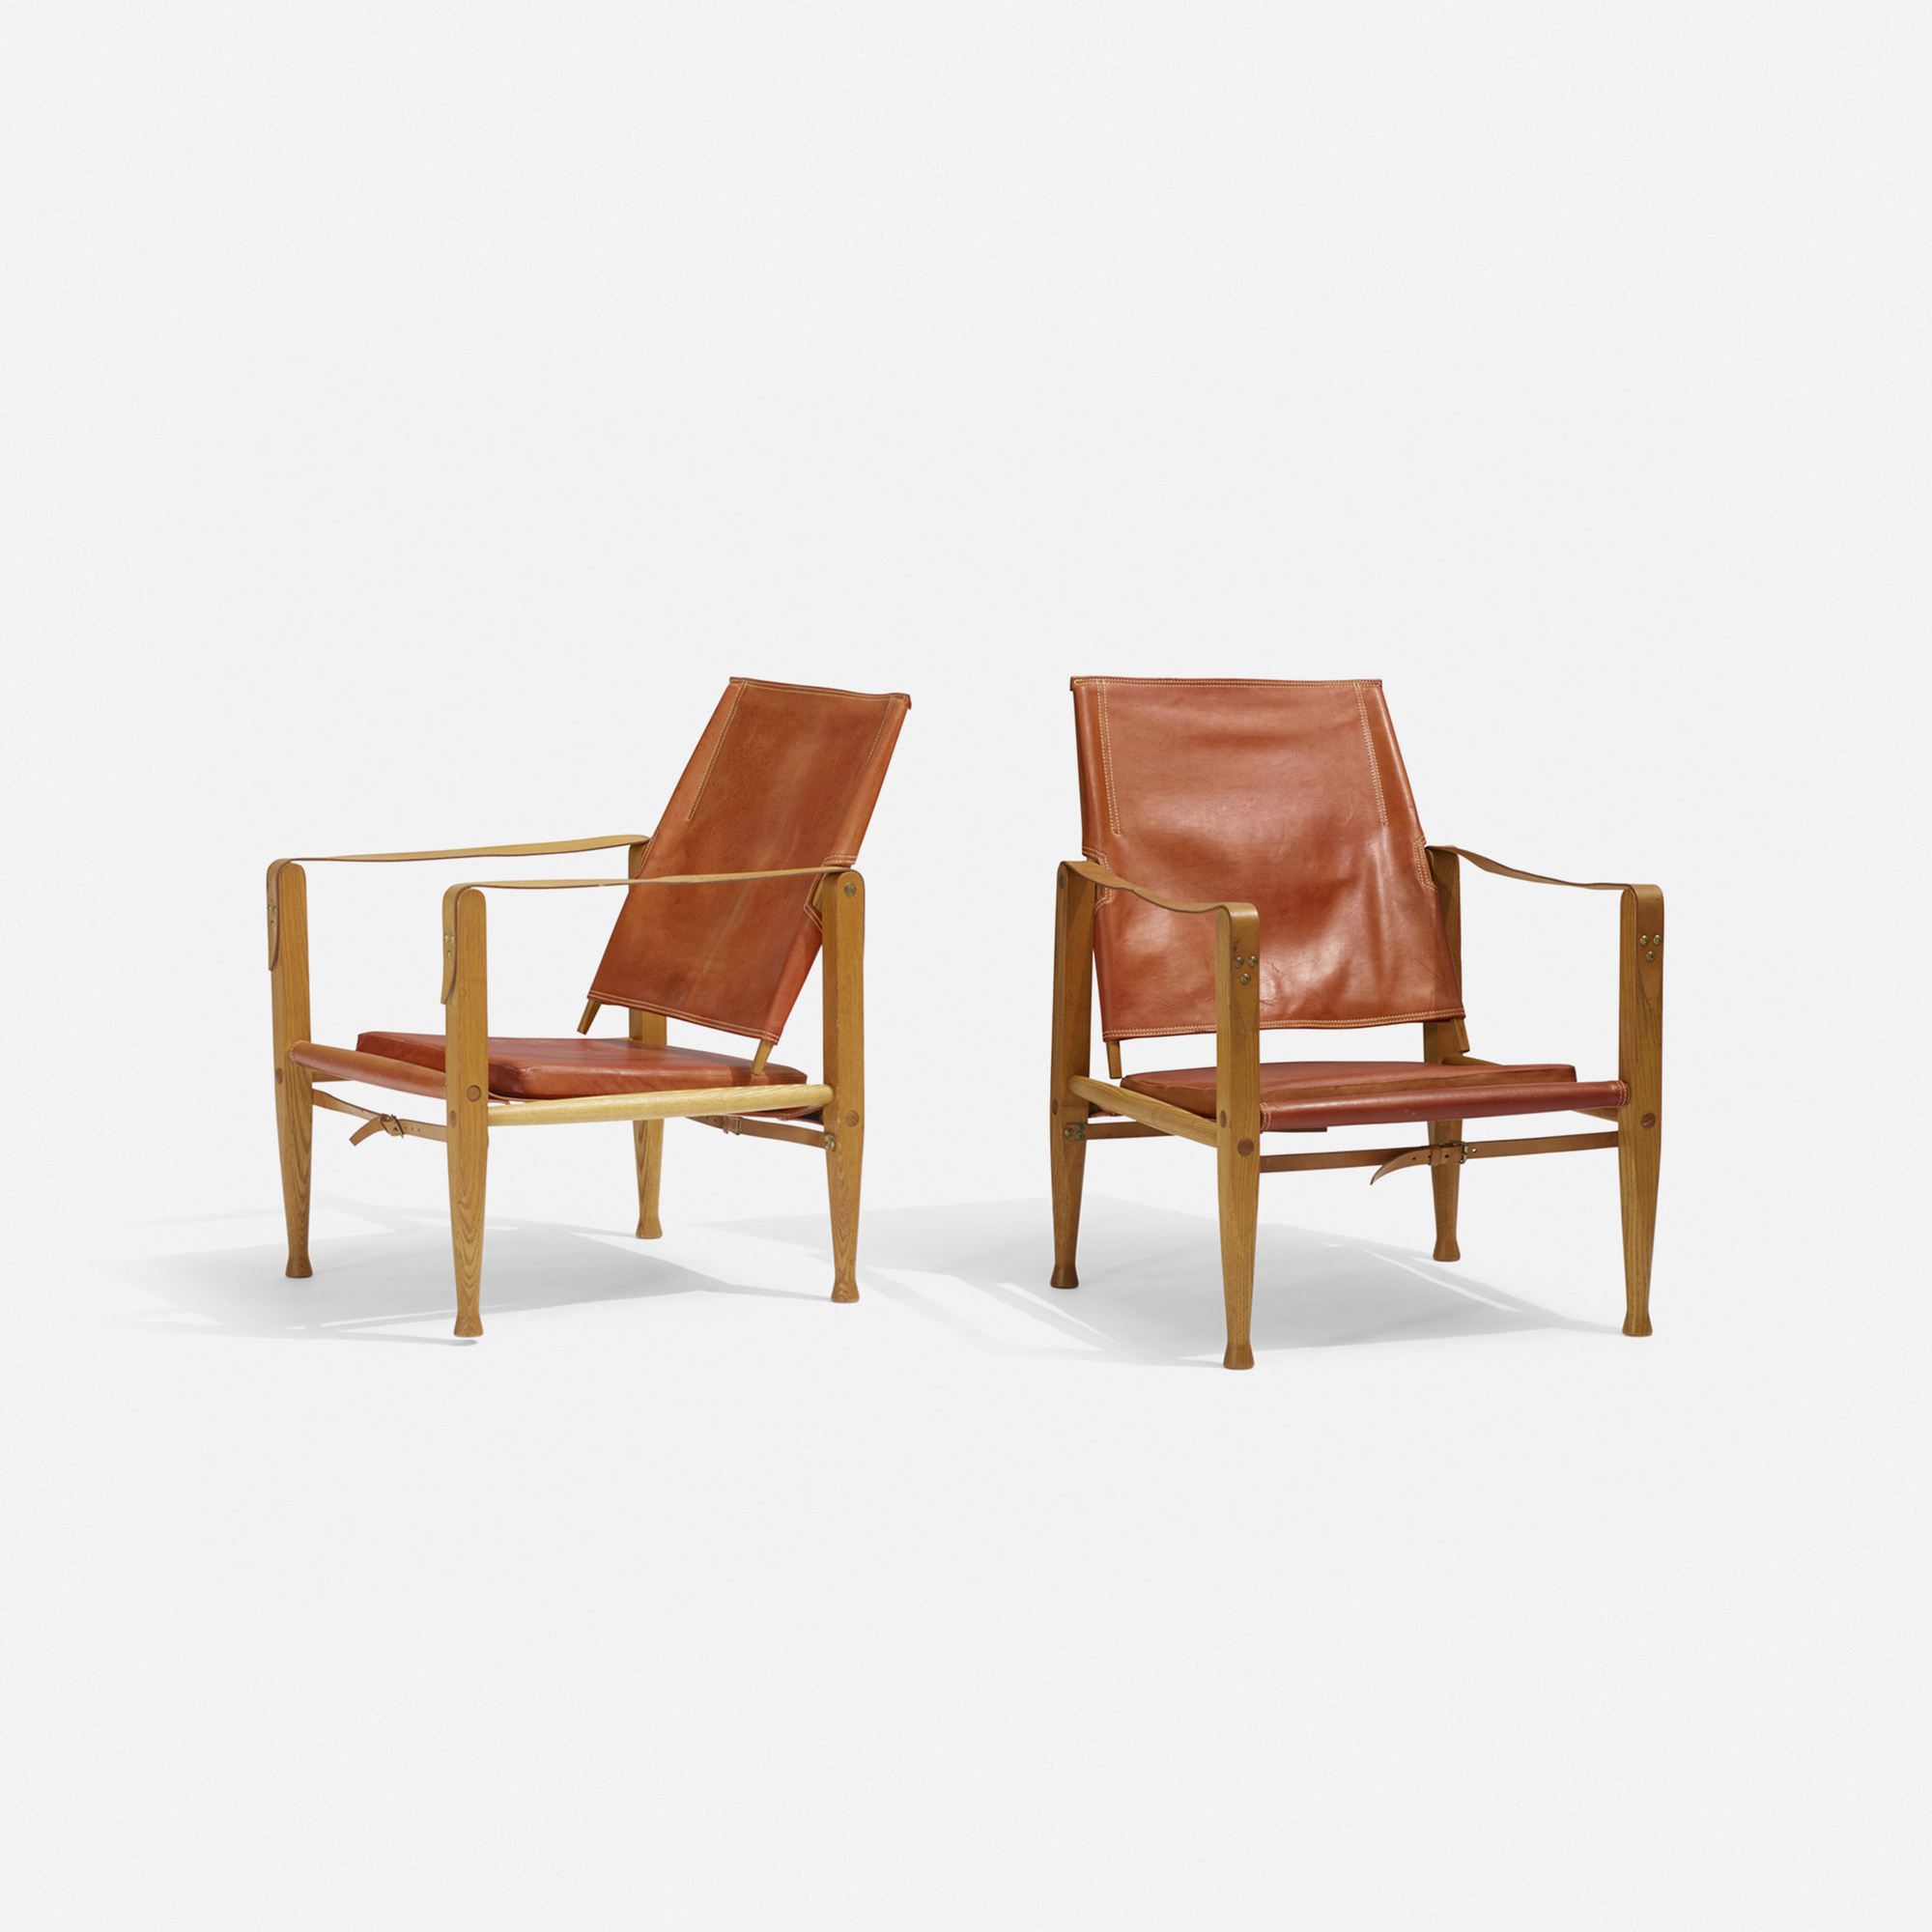 353 Kaare Klint Safari chairs pair Mass Modern Day 1 10